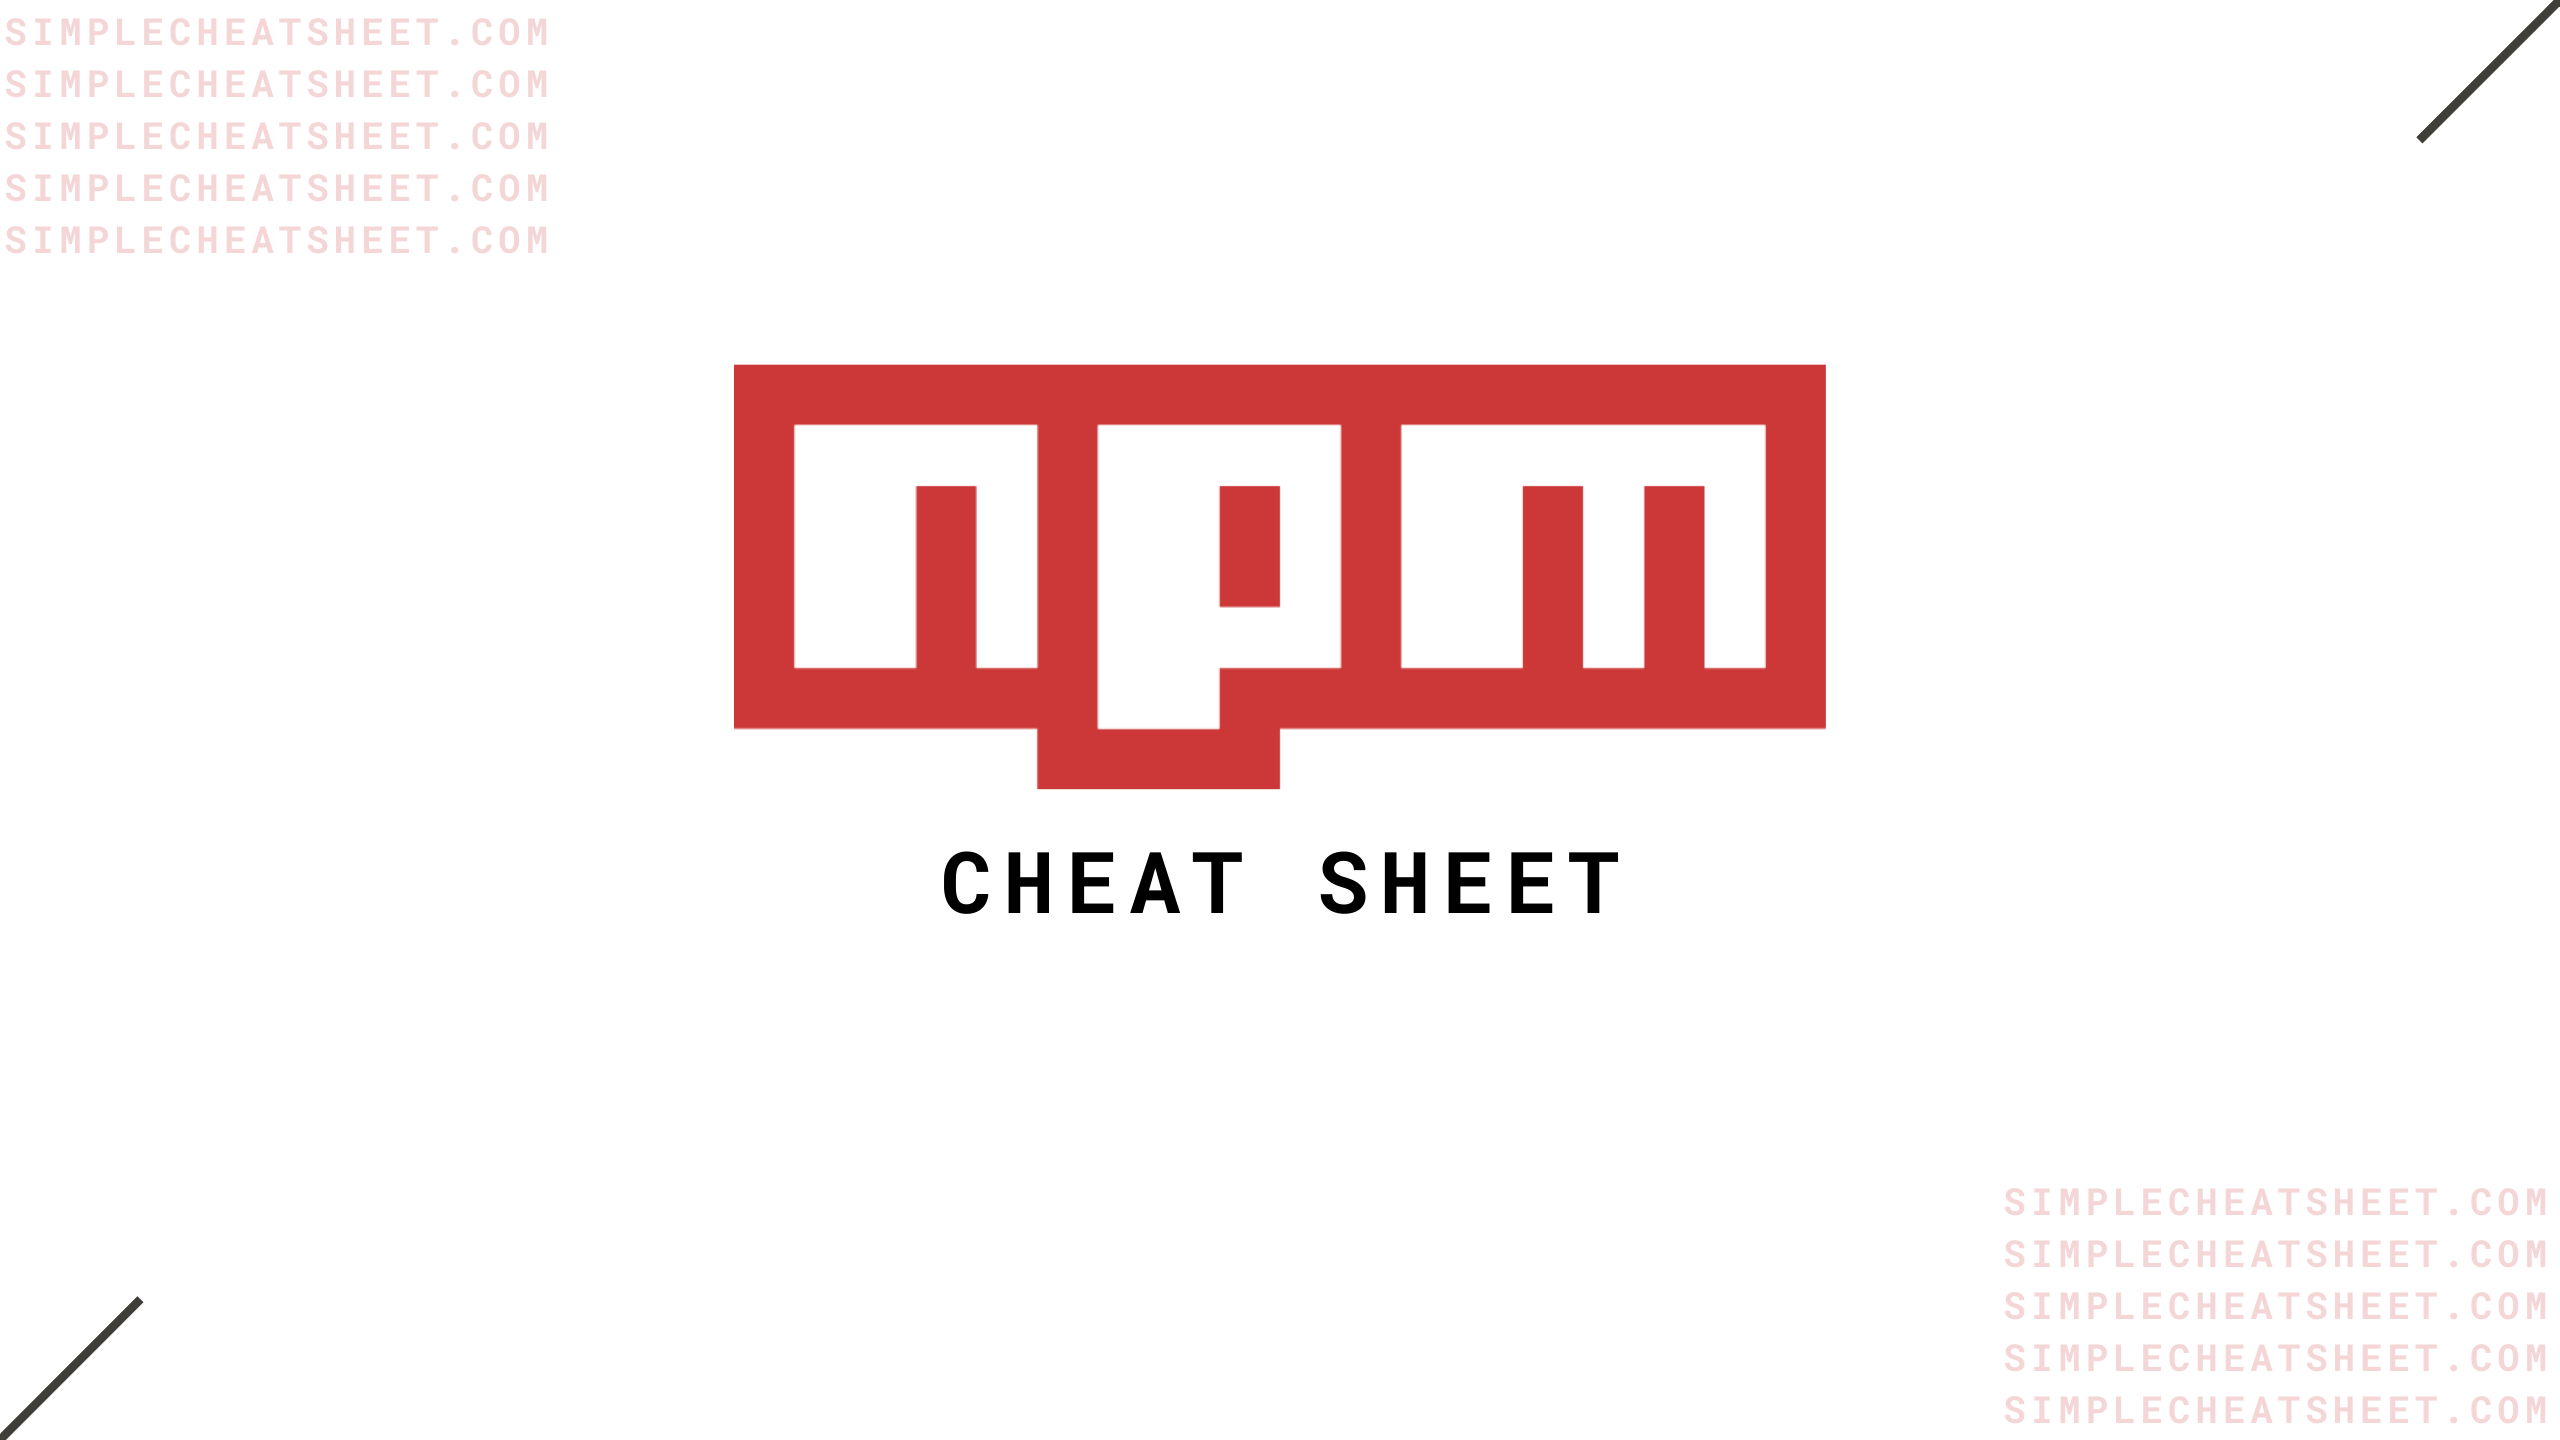 npm cheat sheet